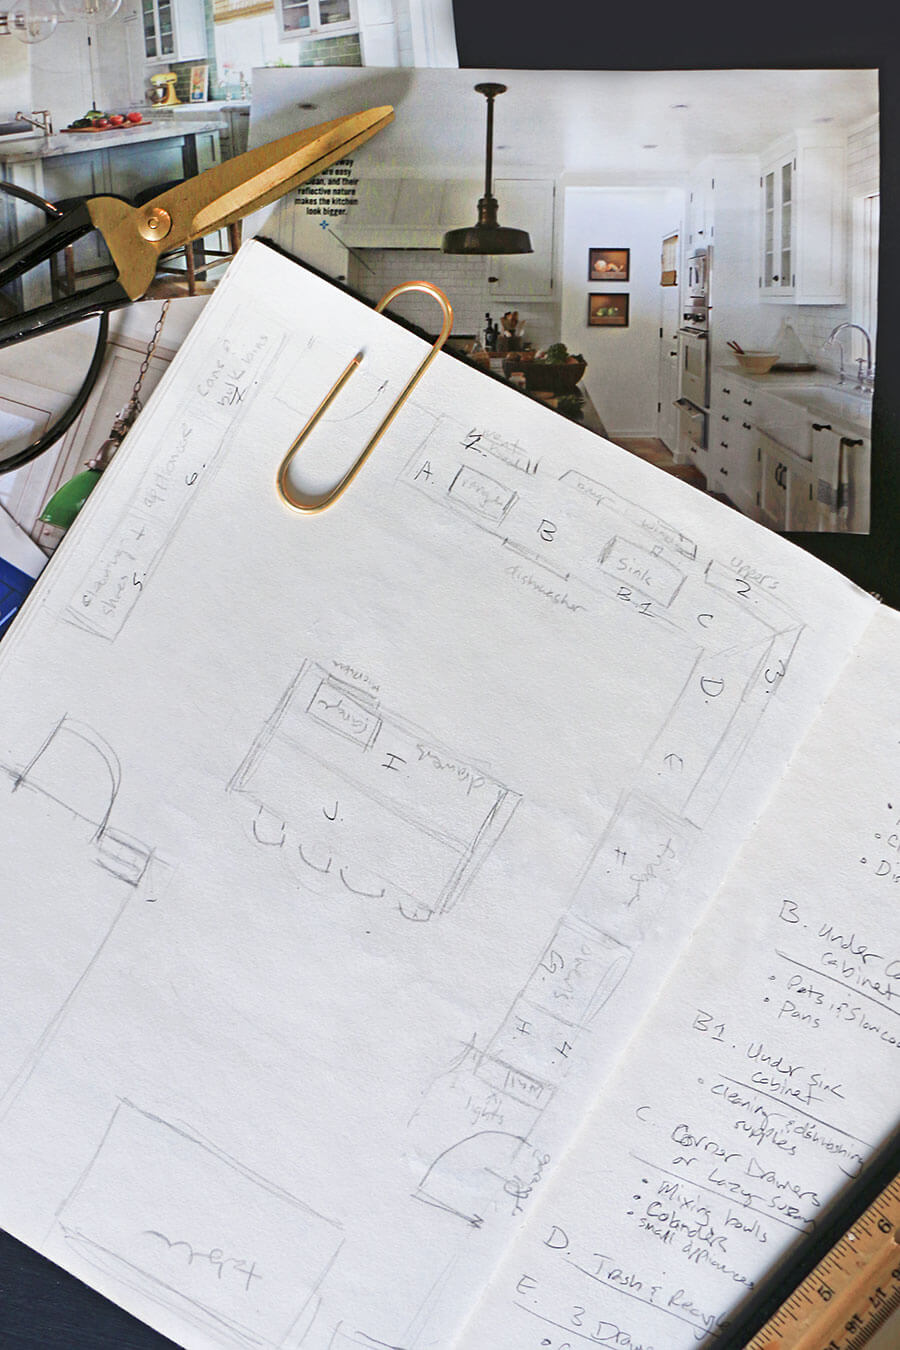 Kitchen-planning-drawing